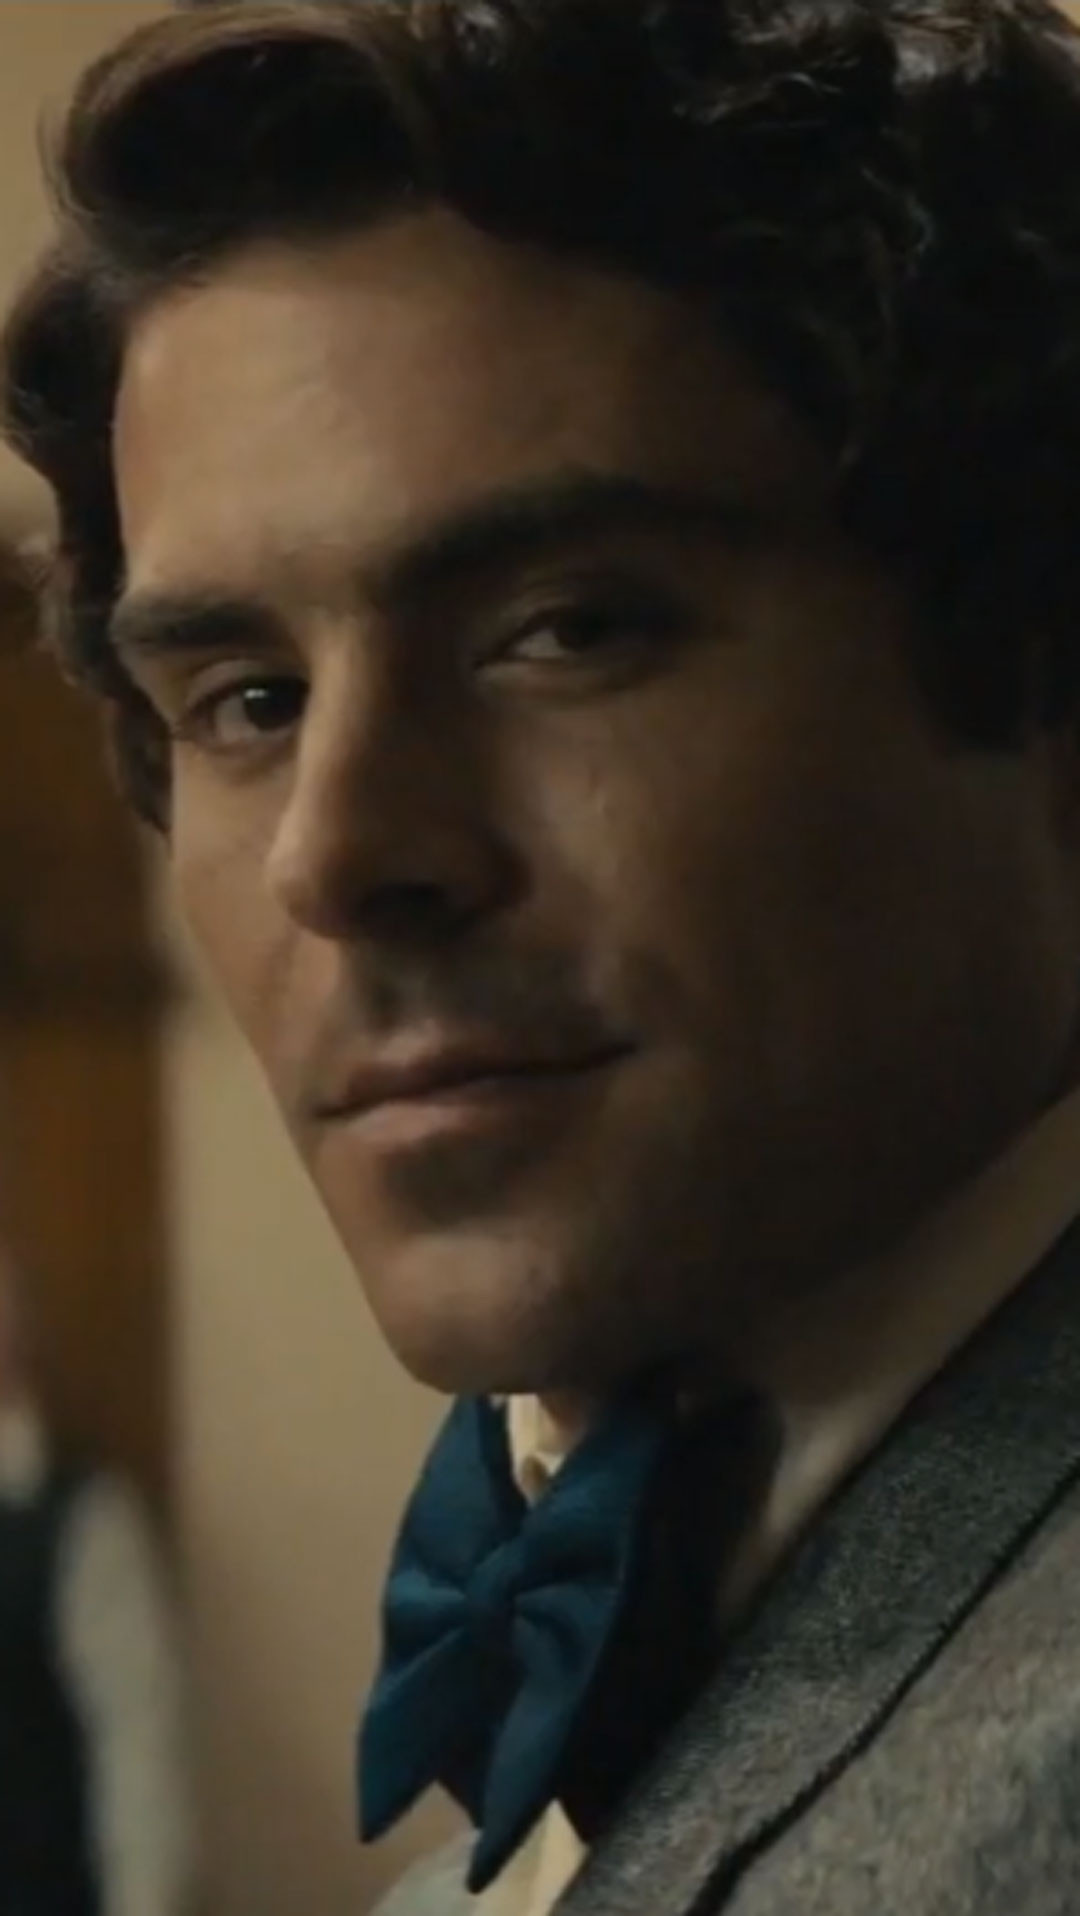 Ted Youtube: Zac Efron Will Give You Chills In New Ted Bundy Movie